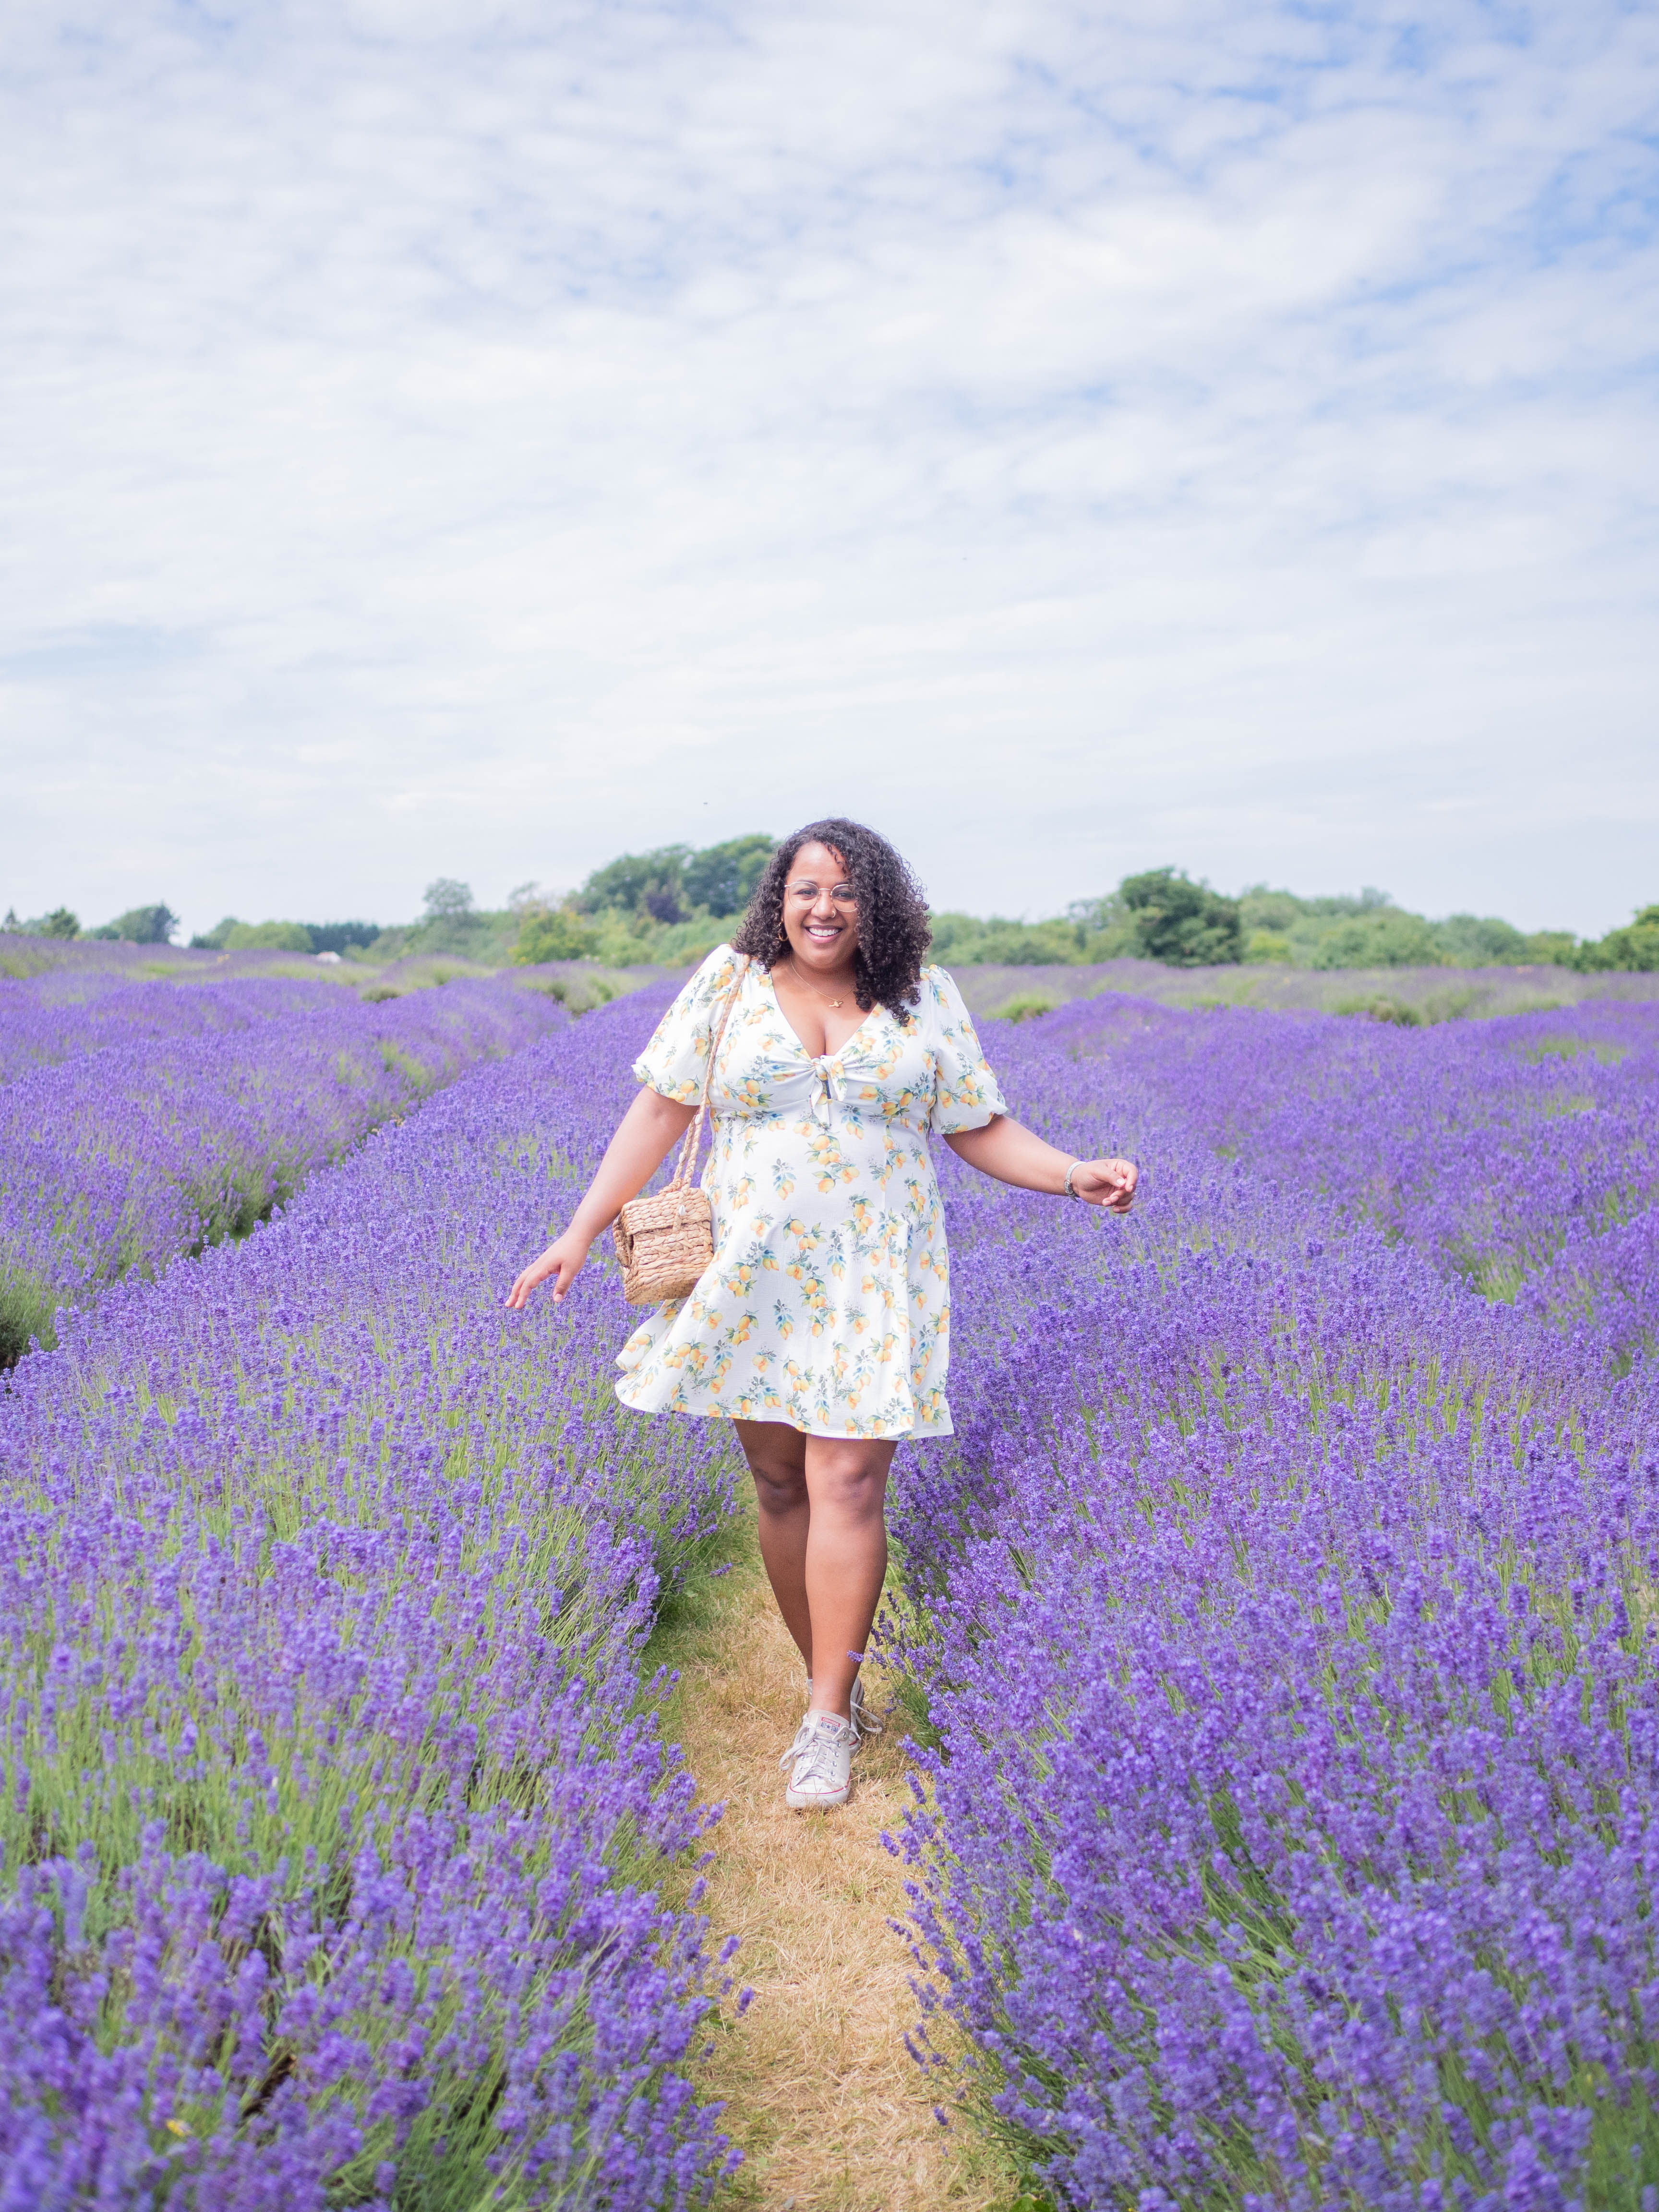 Ghenet stands among the lavender at Mayfield Lavender Farm, in a lemon print dress and a wicker bag.